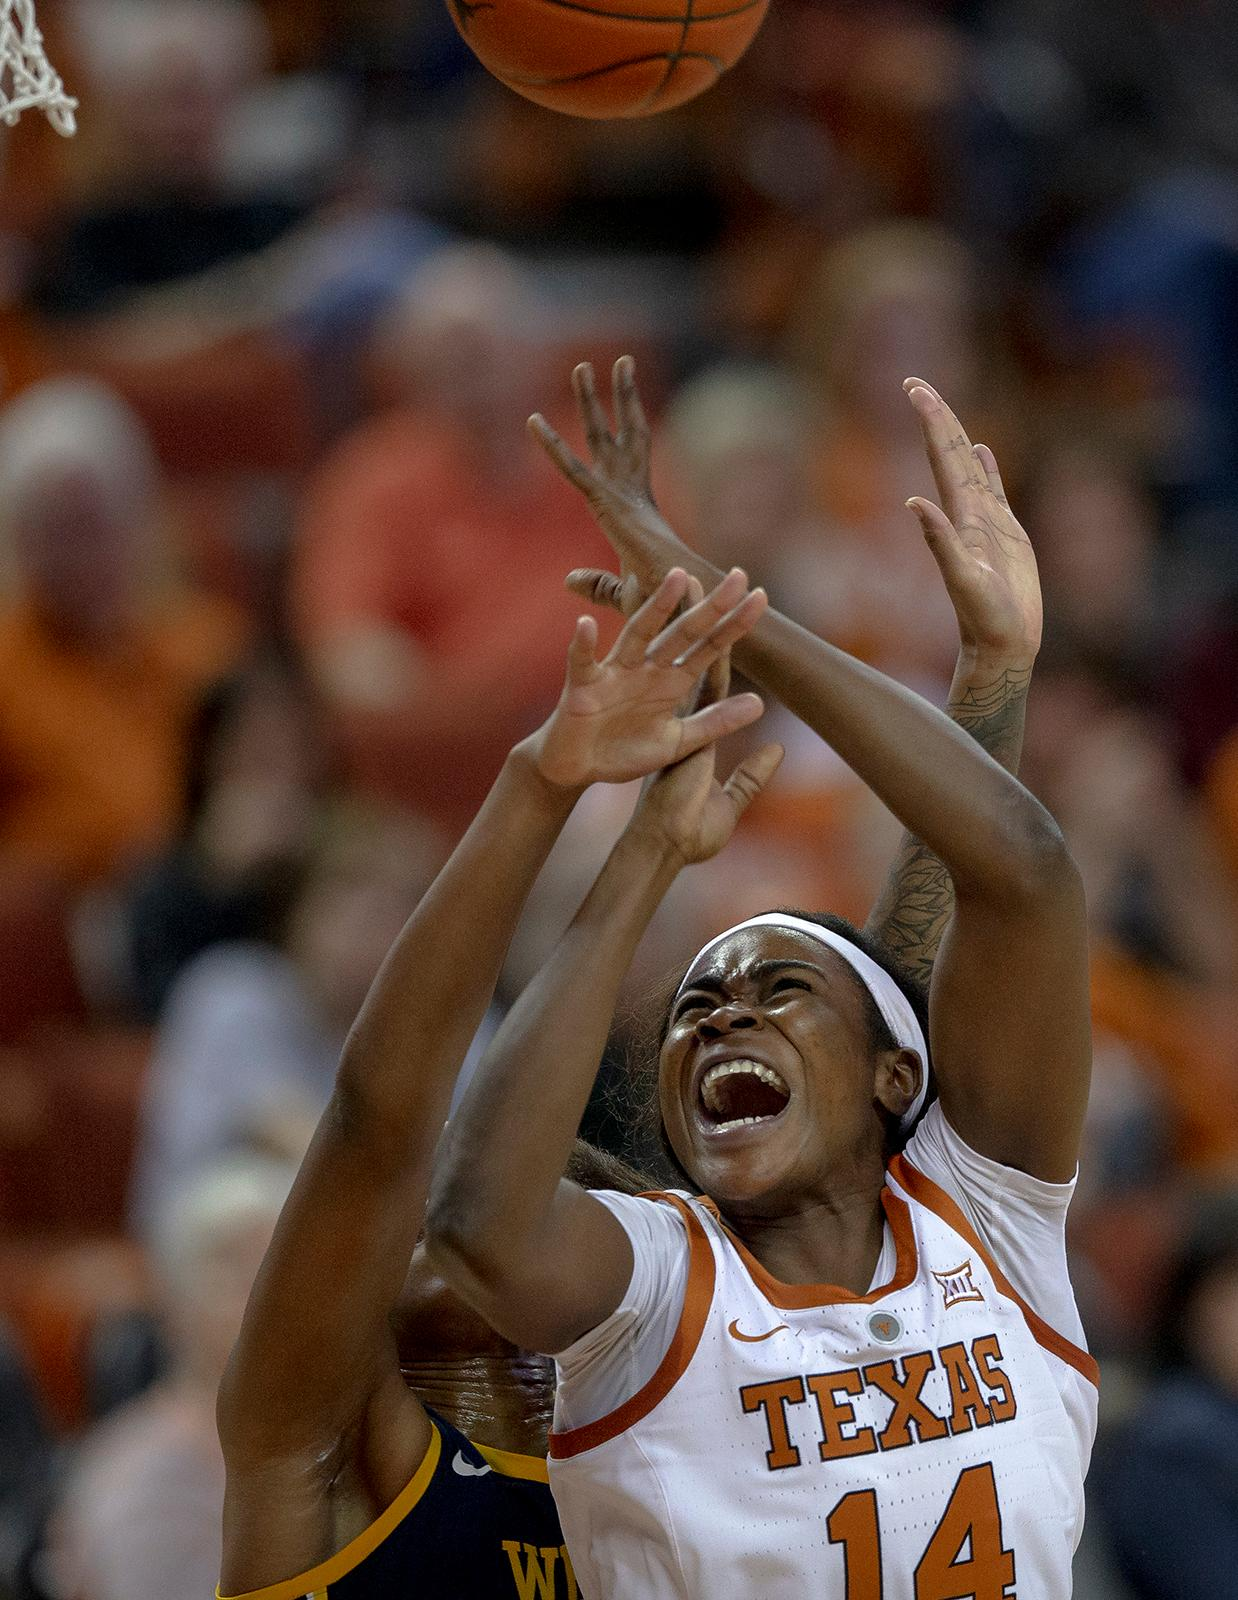 Texas forward Olamide Aborowa (14) is fouled while shooting against West Virginia during an NCAA college basketball game on Monday, Jan. 28, 2019, in Austin, Texas. (Nick WagnerAustin American-Statesman via AP)